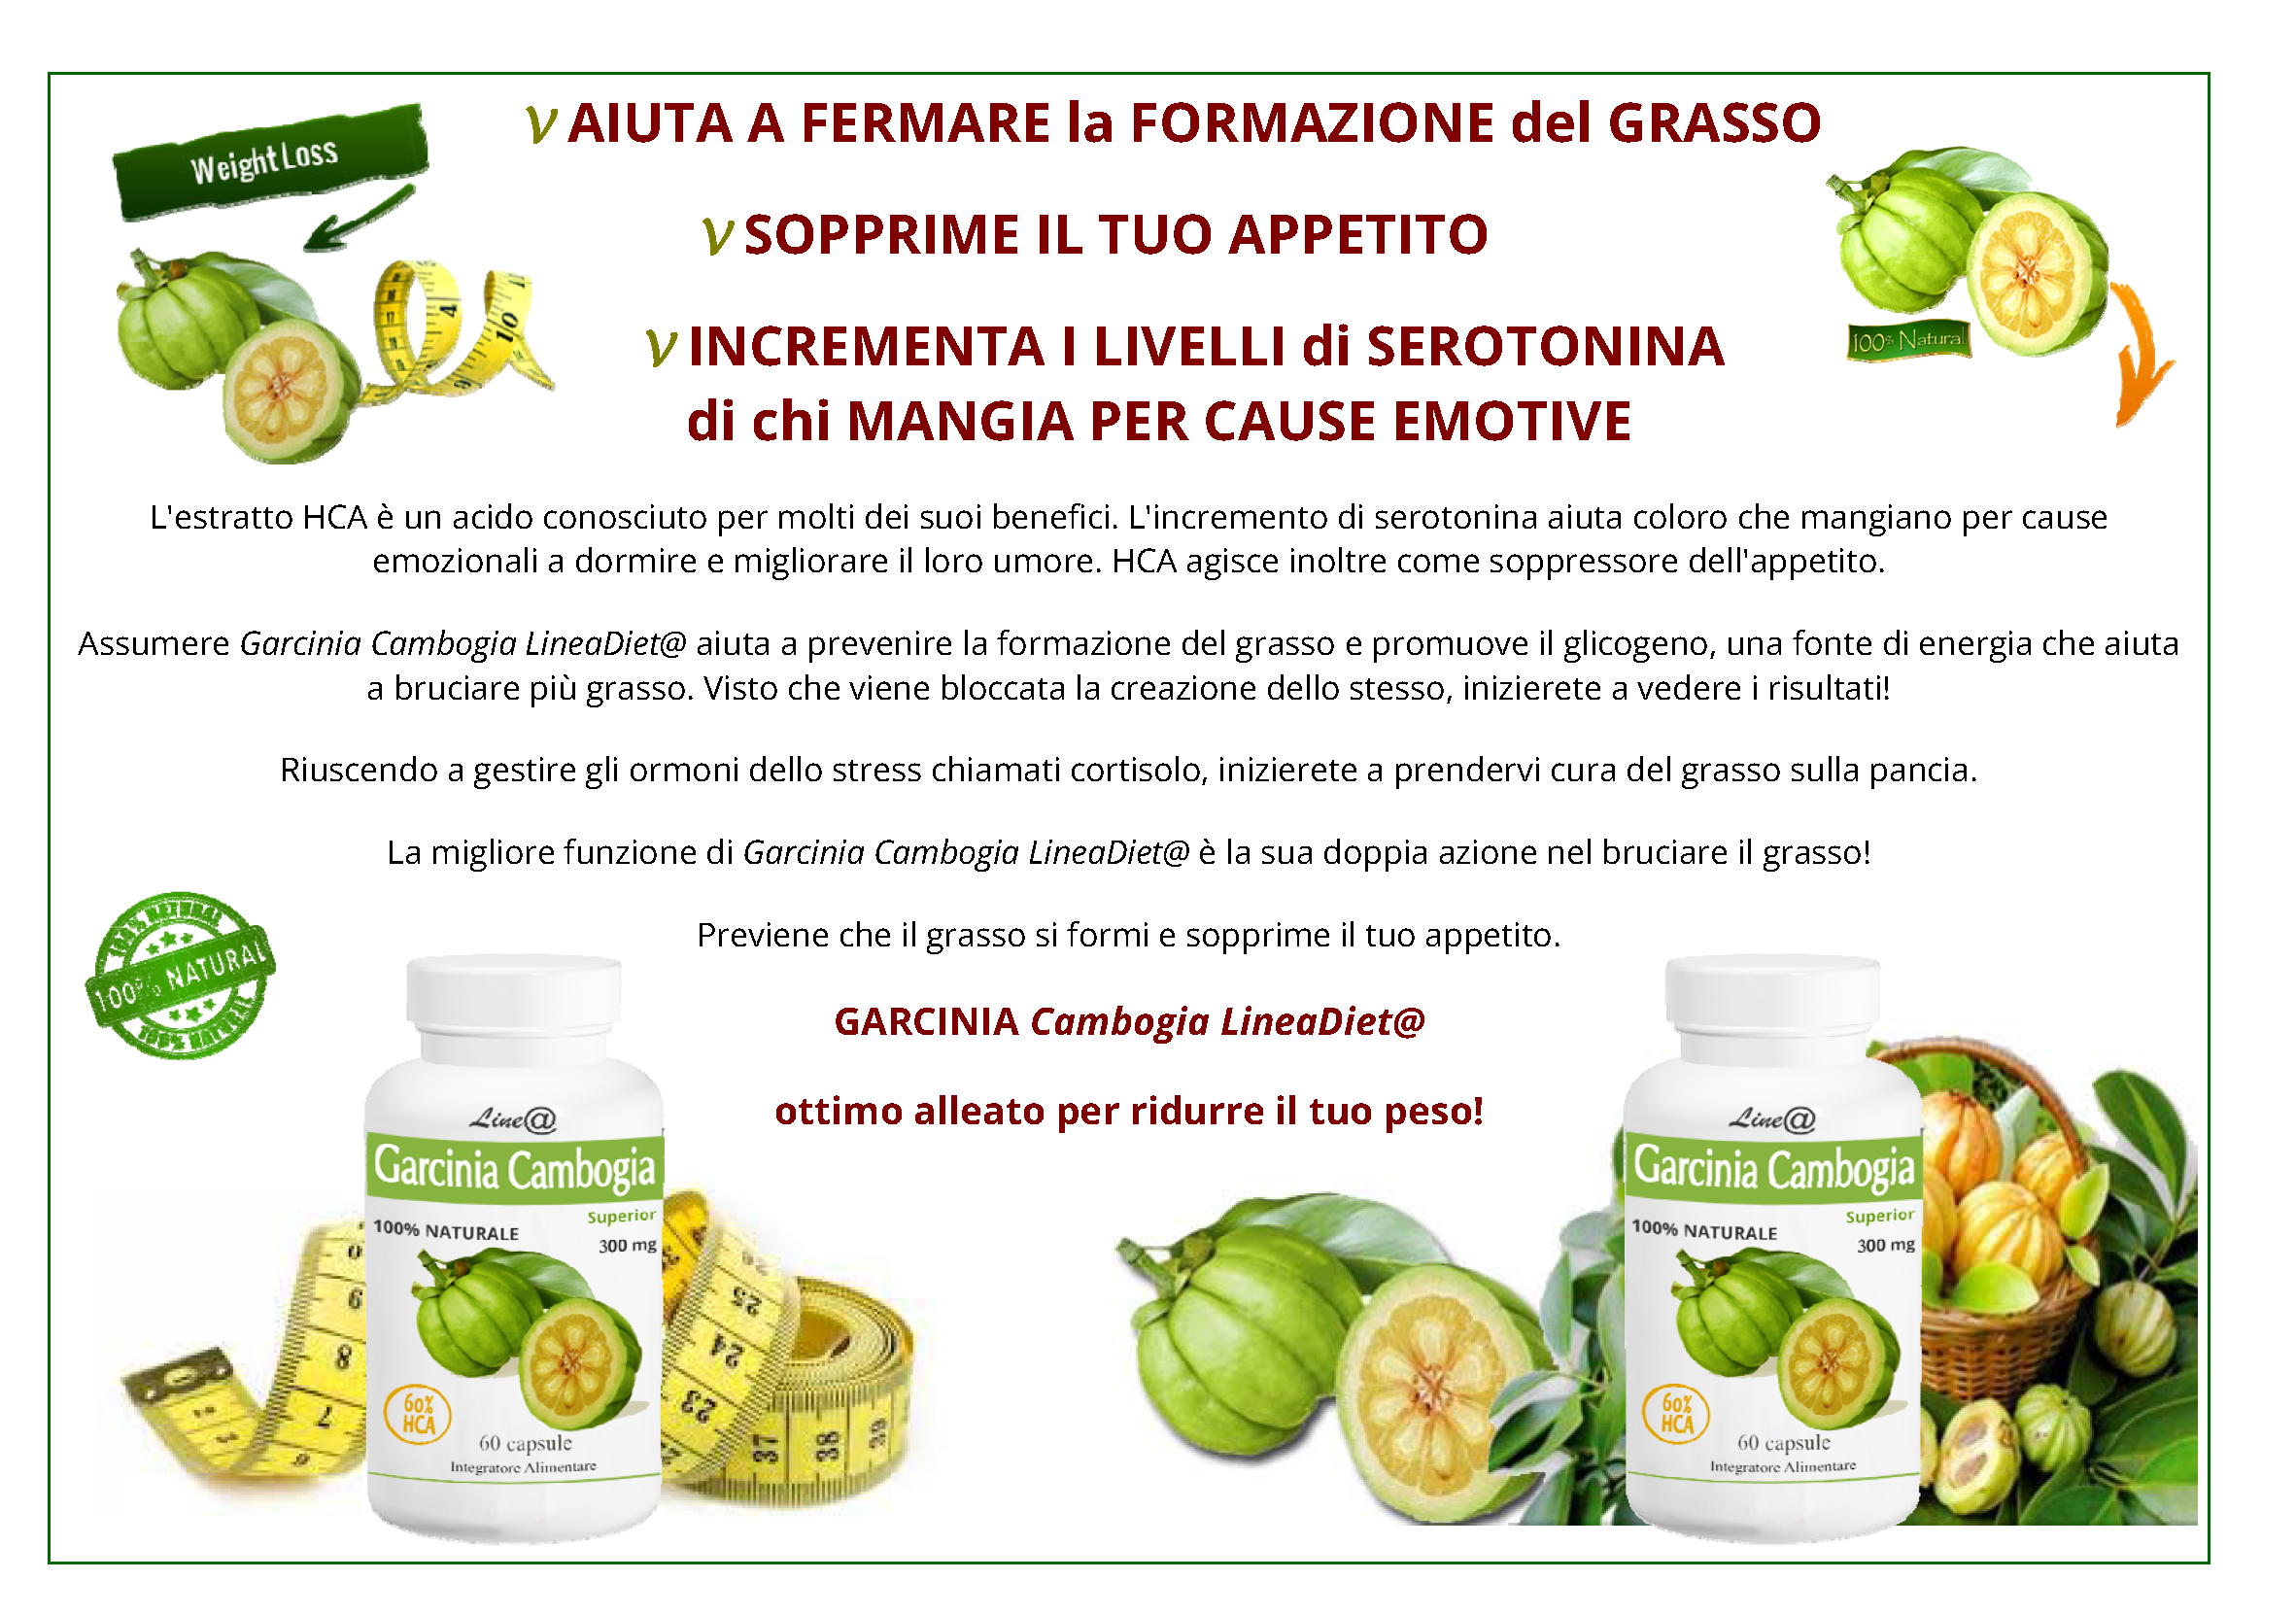 Caralluma health benefits